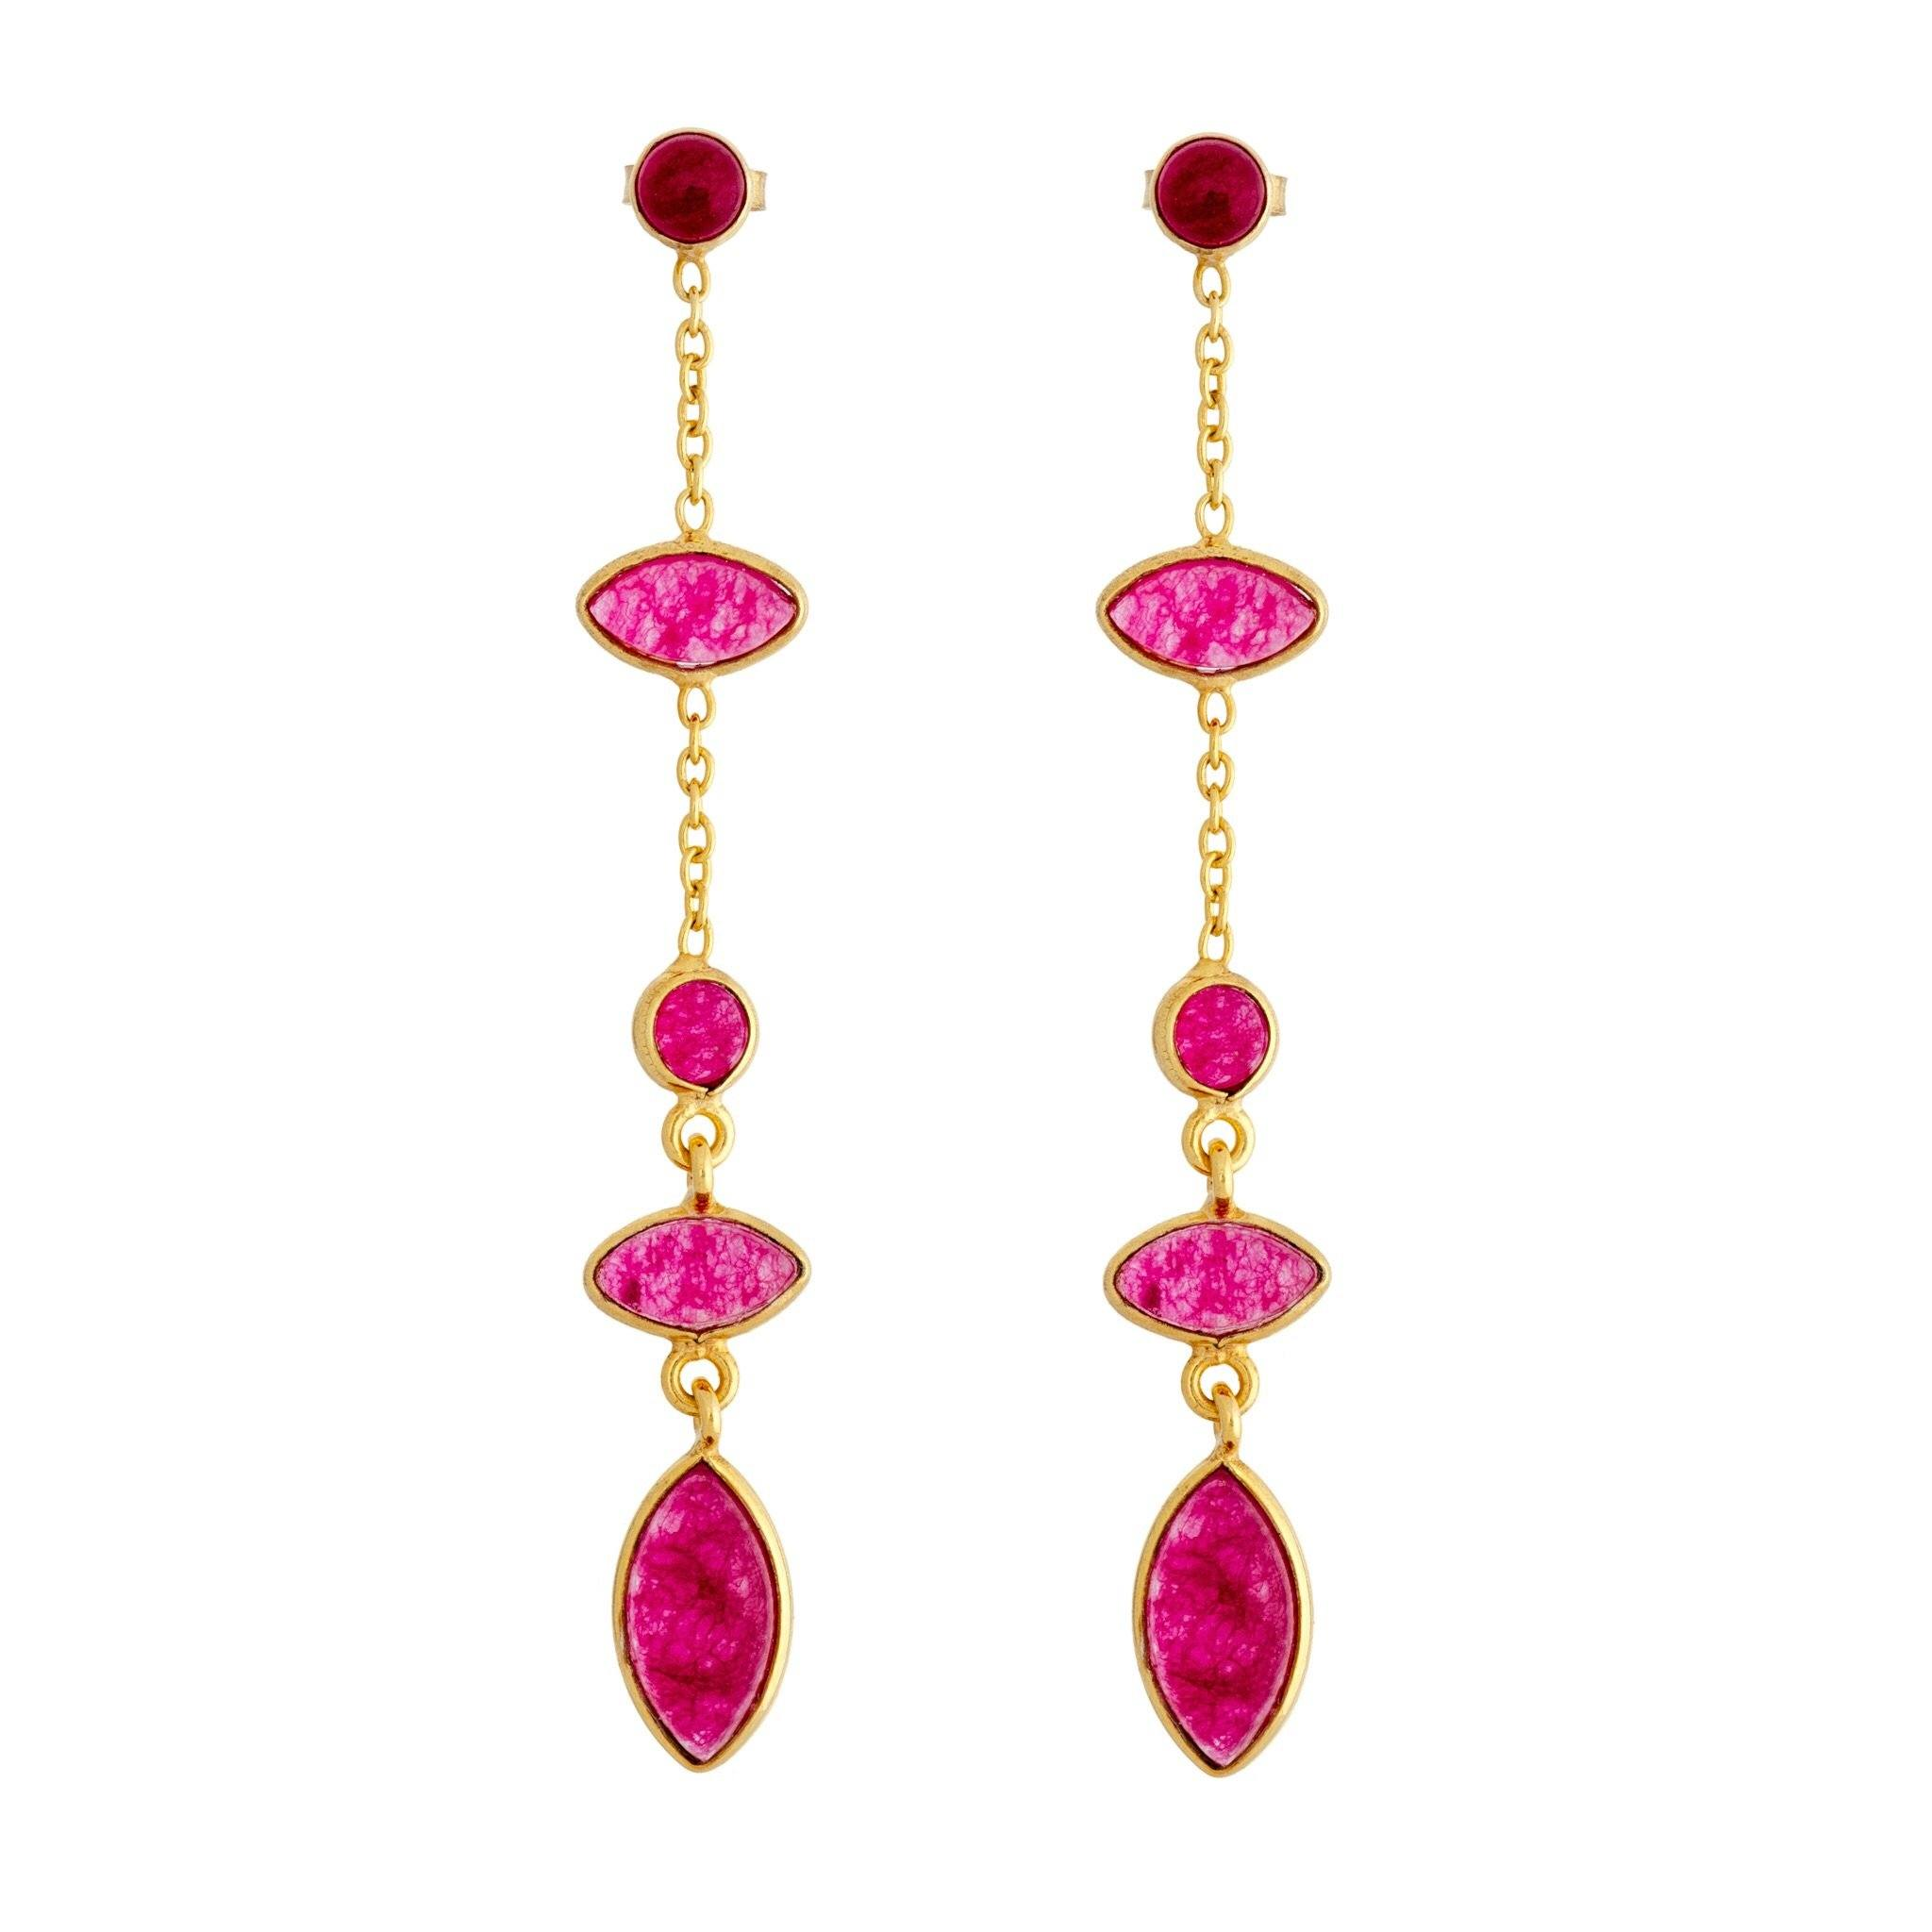 TA rubellite earrings - MadamSiam